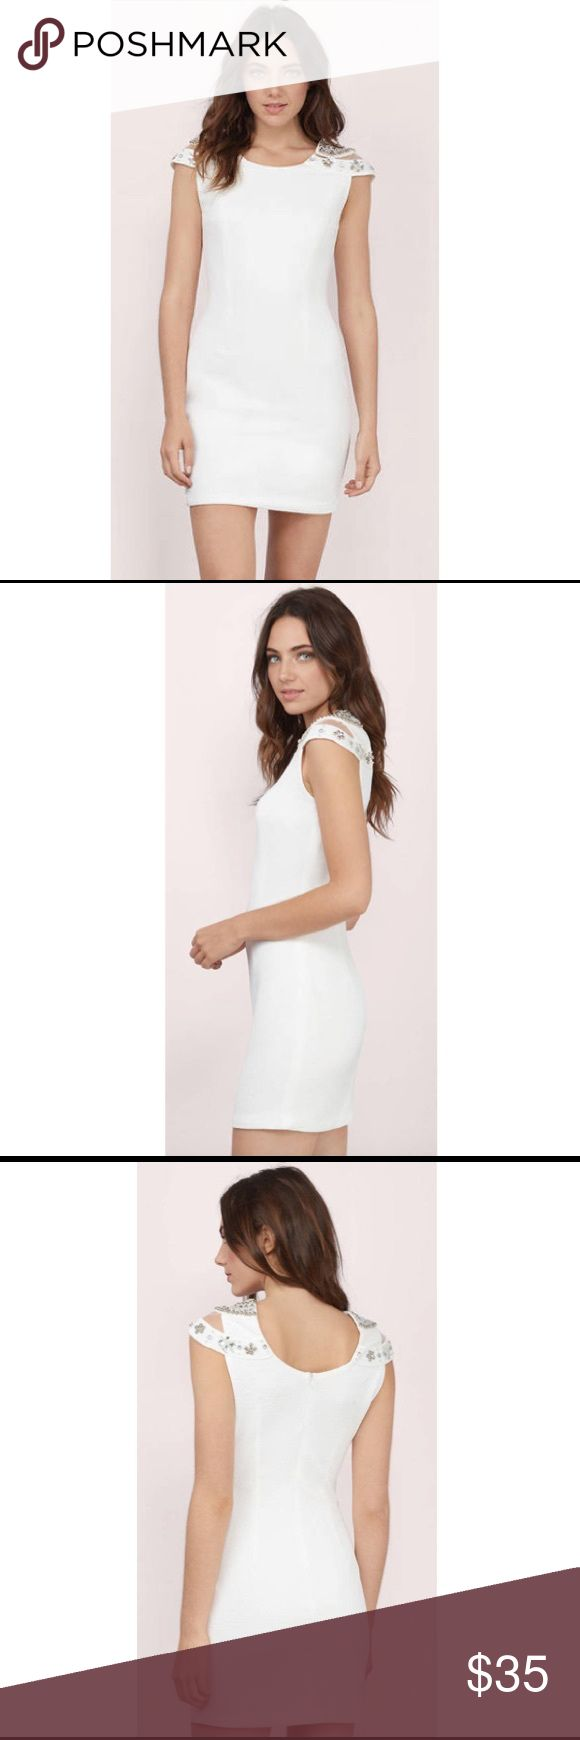 Pure Jewel Ivory Bodycon Dress White dress perfect for any special occasion featuring cap sleeves with jeweled embellishments.  Never been worn! Dresses